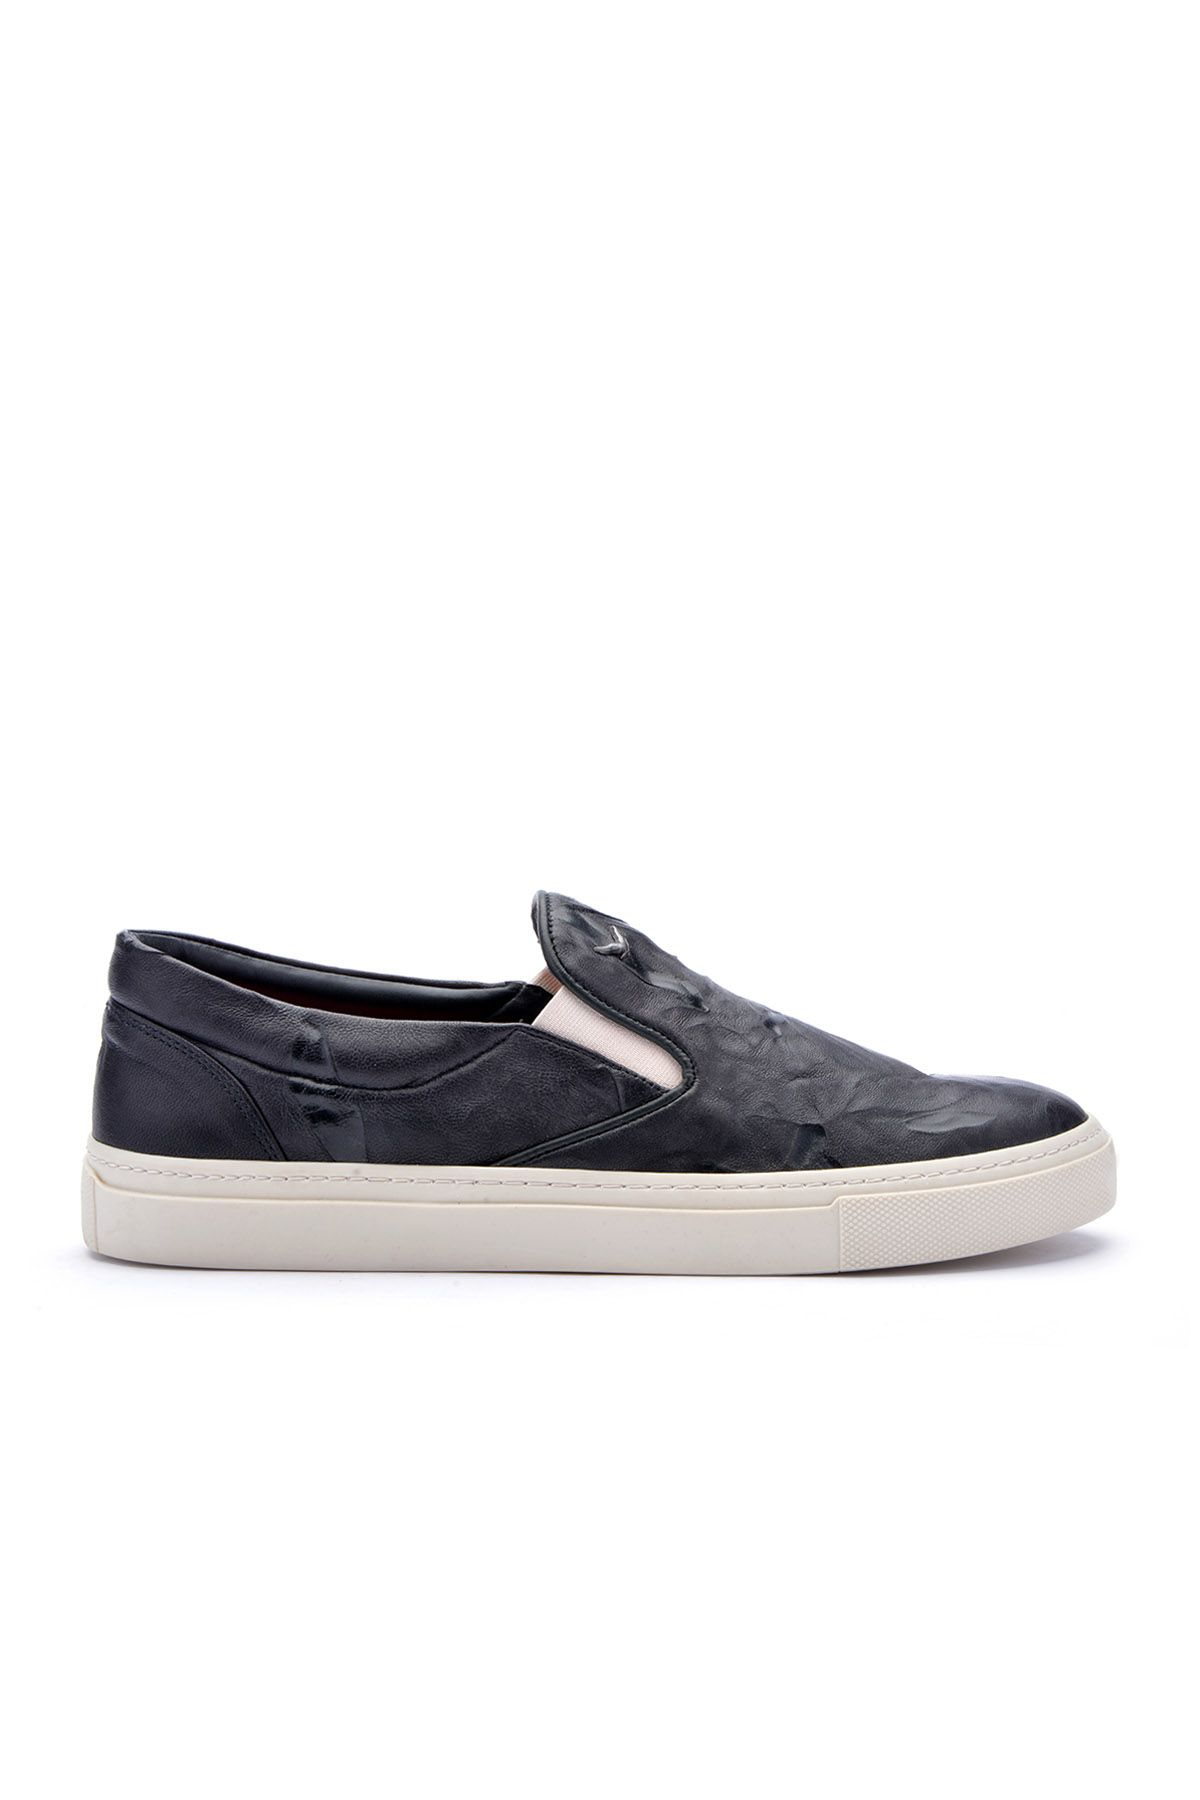 Art Goya Women Sneakers From Genuine Leather With Pattern Black